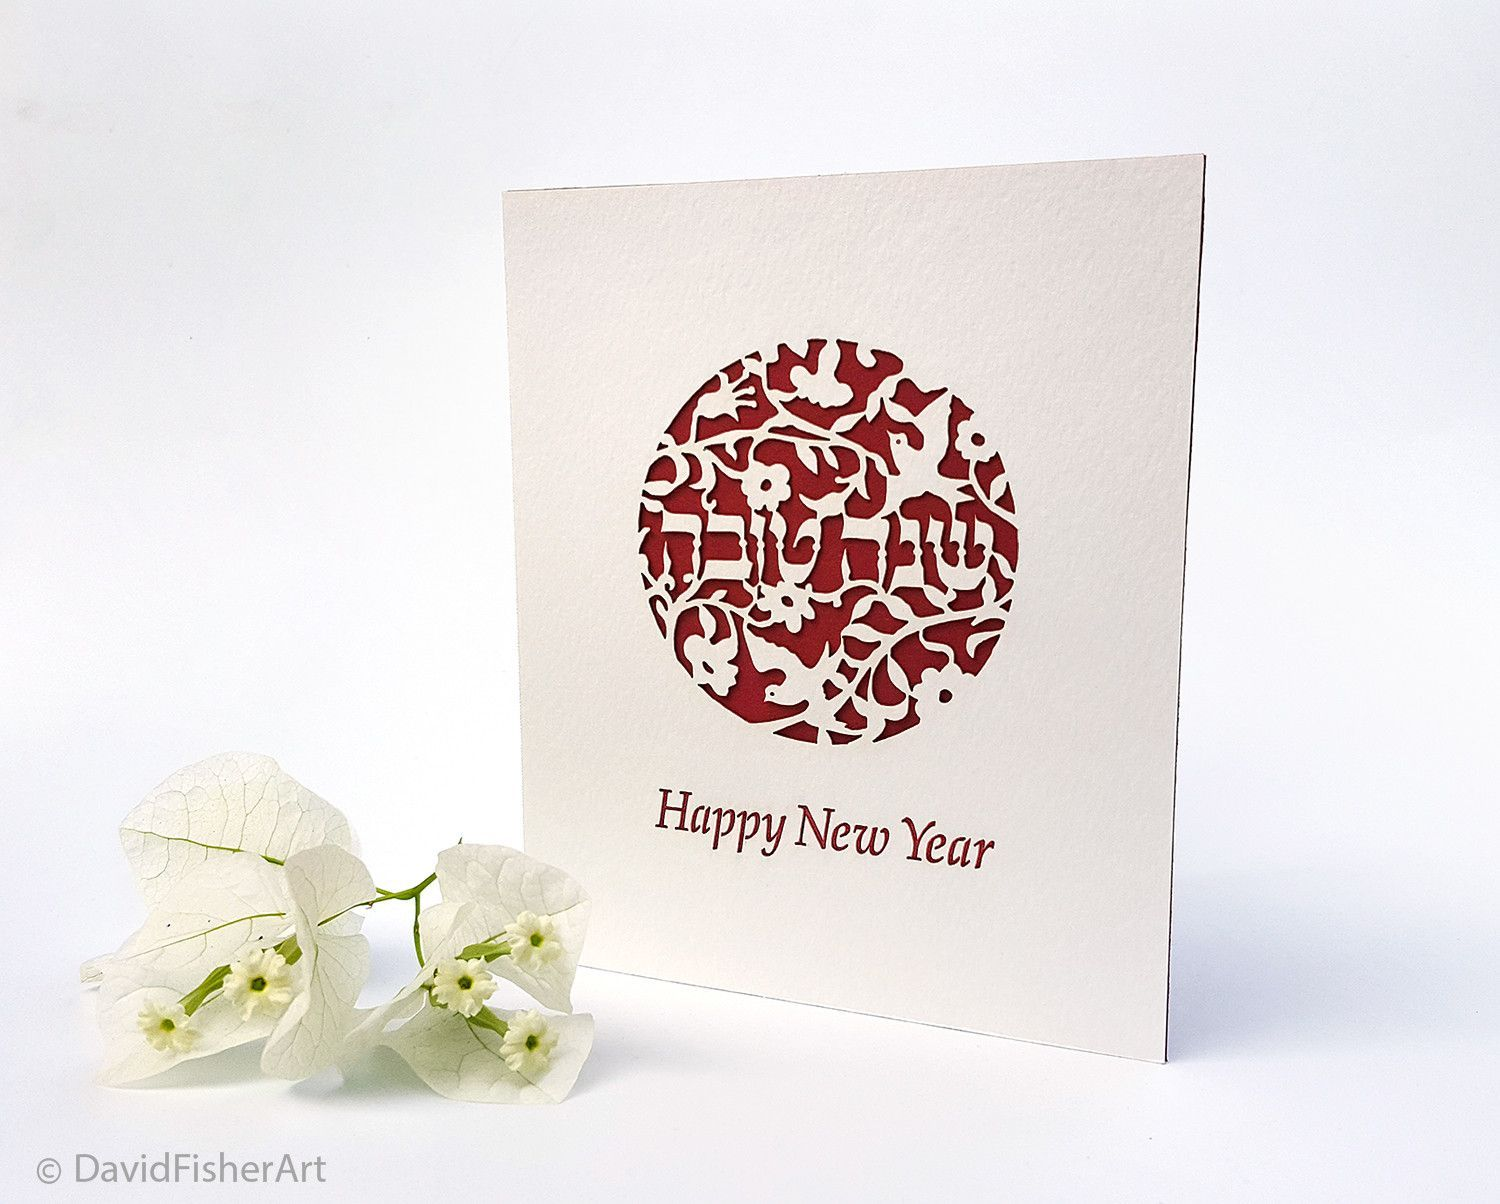 Rosh hashanah cards - Papercut Shana tova, Set of 5 cards (red), Greeting for shanah tovah and happy new year, by David Fisher